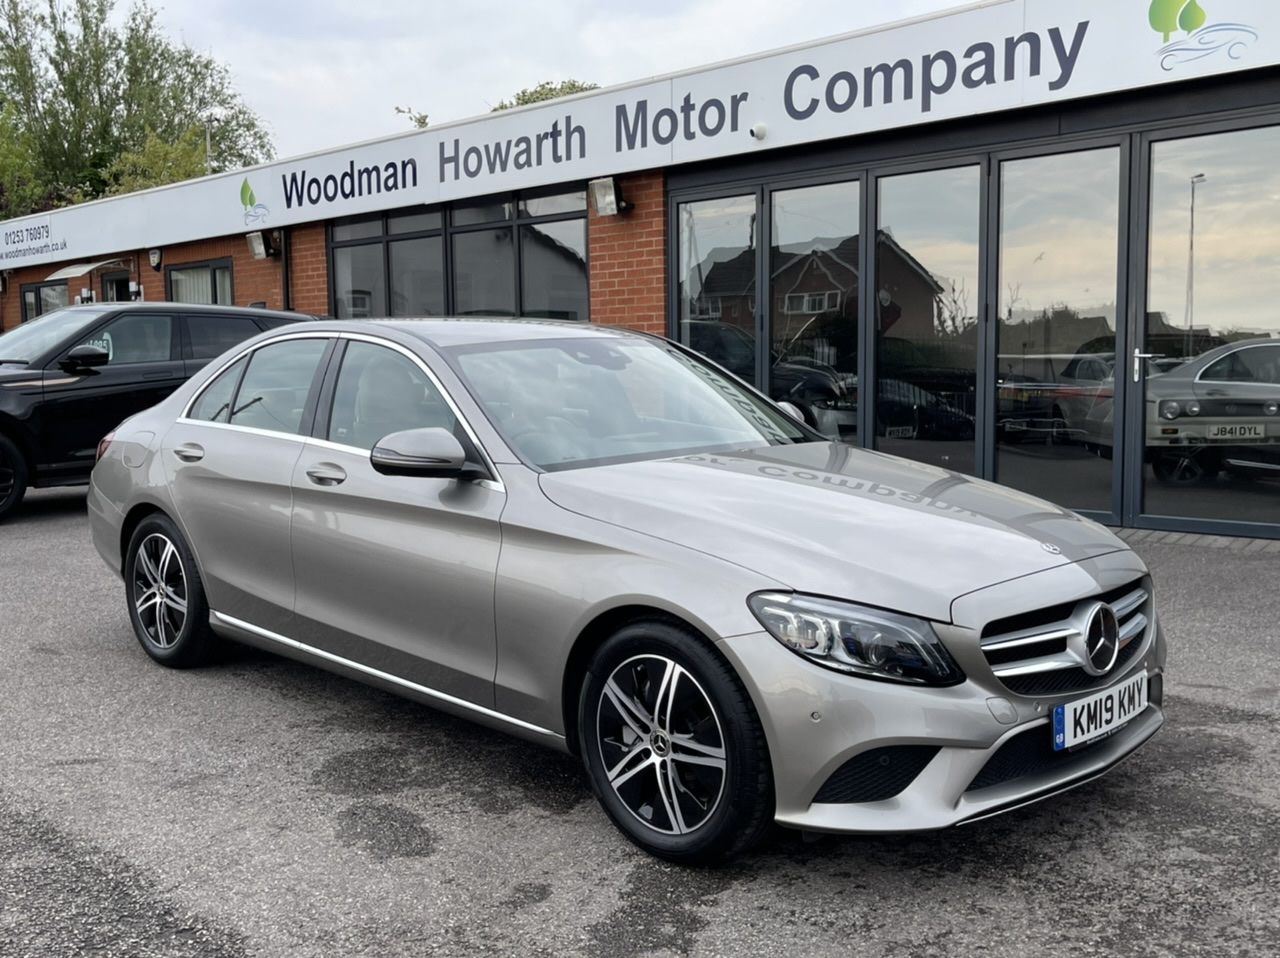 2019 19 MERCEDES BENZ C300D 245BHP SPORT PREMIUM SALOON 9G-TRONIC AUTO - Incredibly rare spec includes Premium and Driver Assistance Packs - Beige Leather - Only 1700 miles!